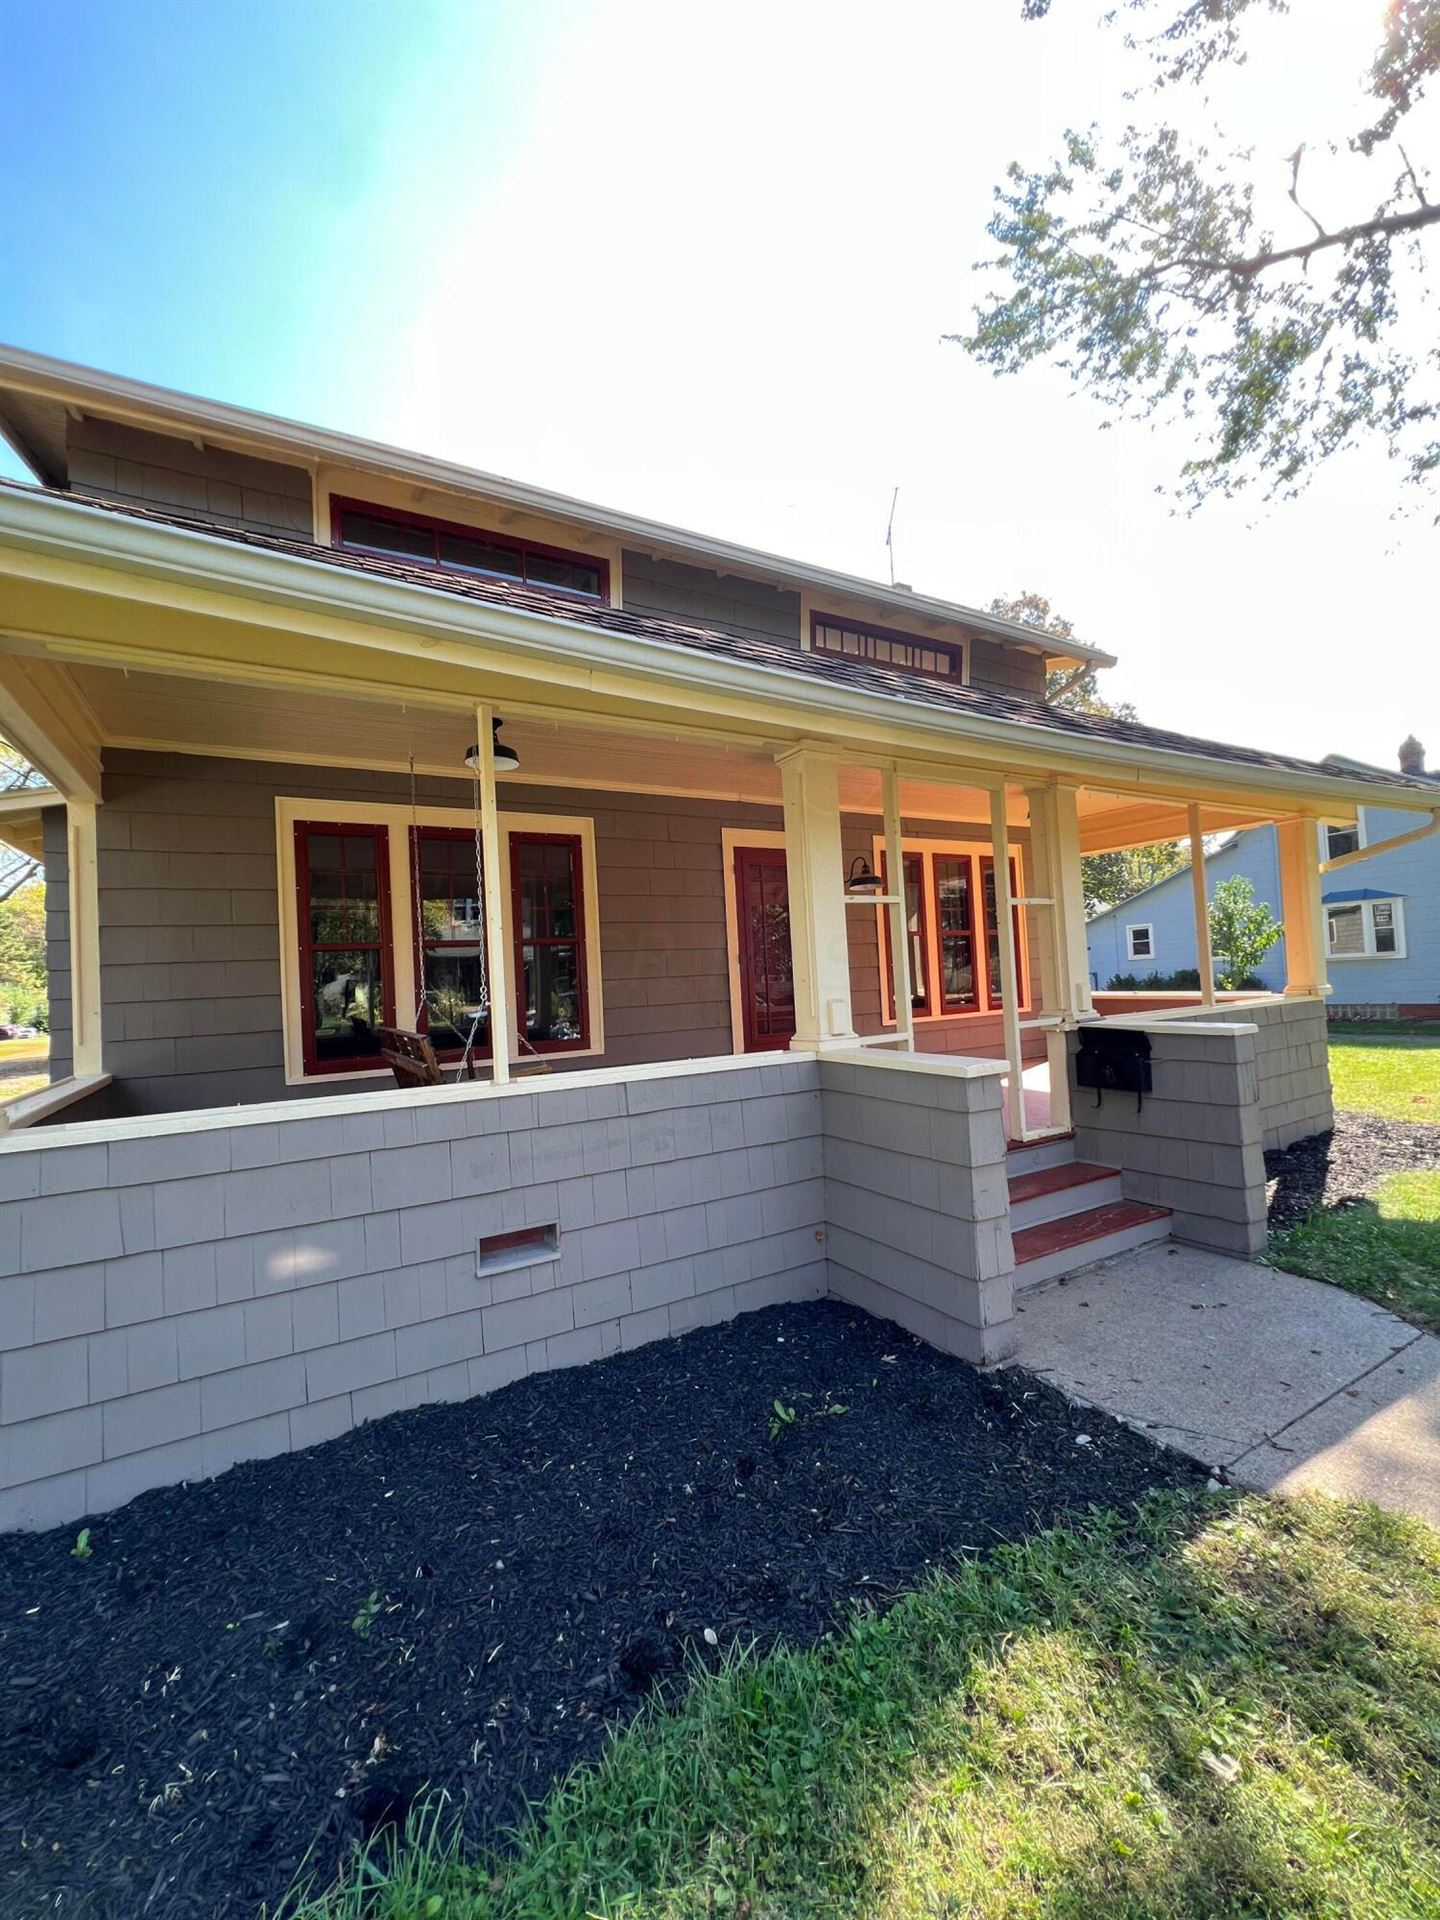 Photo of 108 S Grove Street, Westerville, OH 43081 (MLS # 221040163)